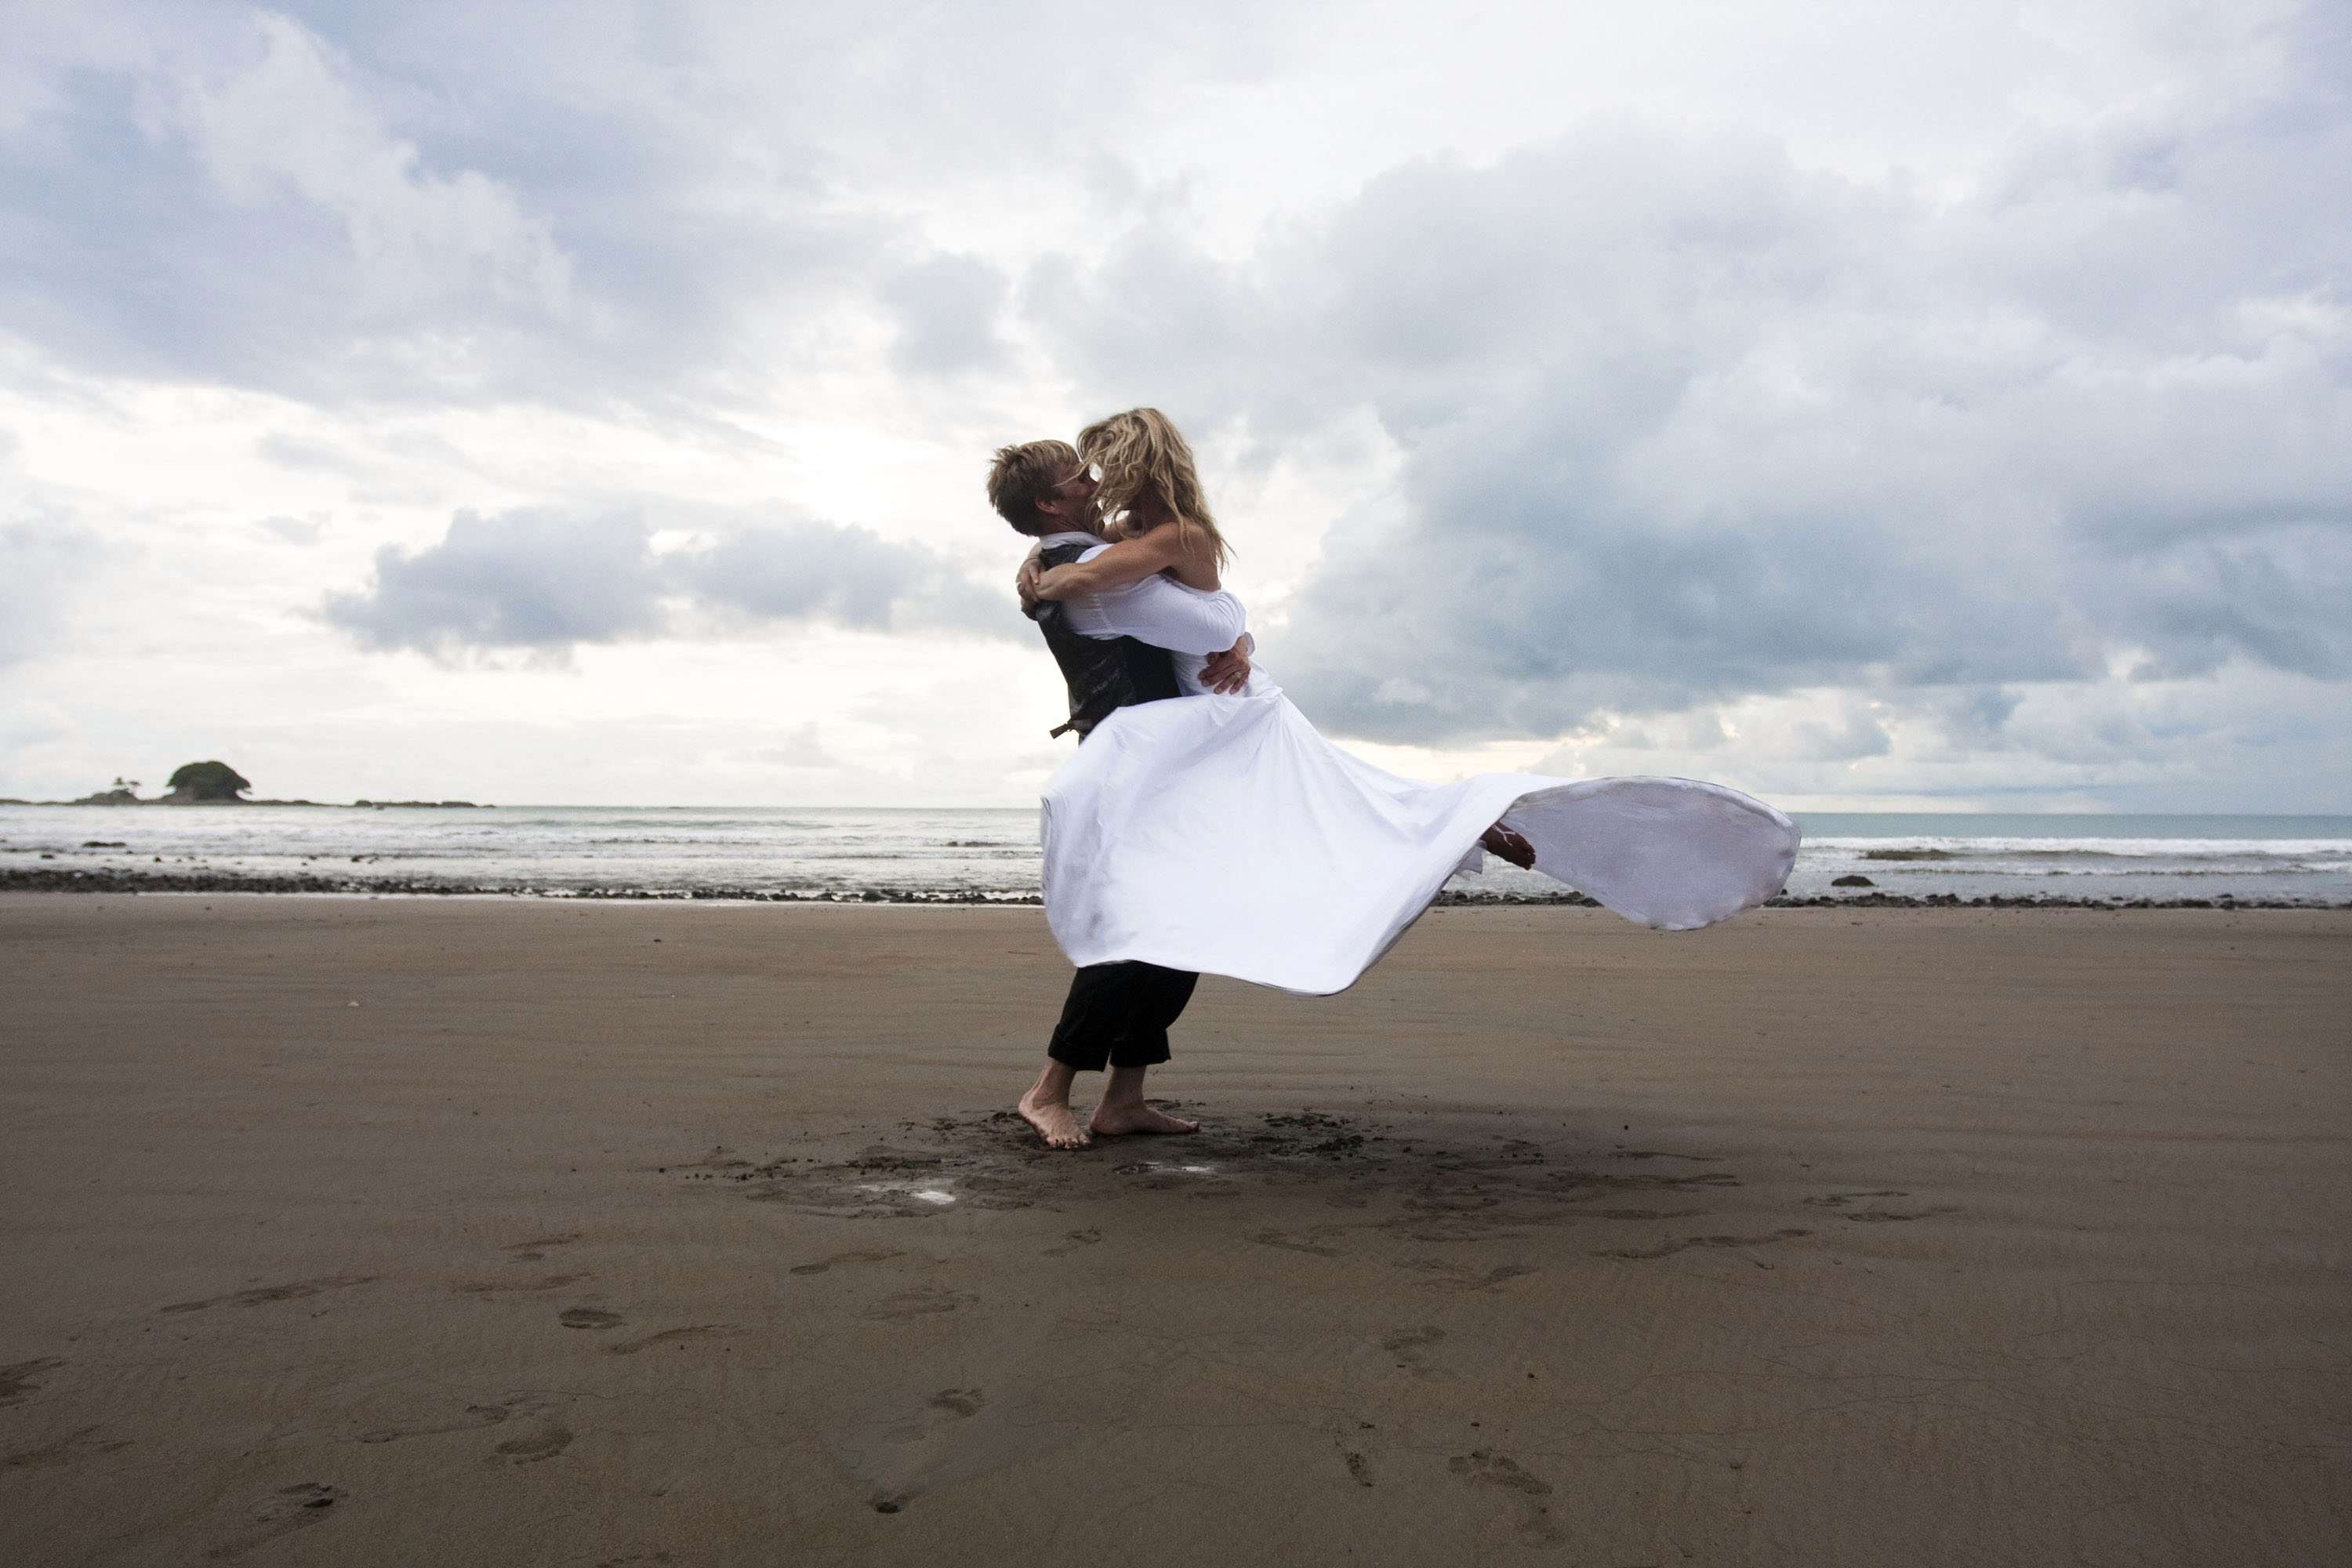 DOMINICAL, COSTA RICA - JUNE 19:  (R-L) In this handout provided by Gretchen Bleiler, Olympic snowboarder Gretchen Bleiler and Chris Hotell celebrate during their wedding on June 19, 2009 in Dominical, Costa Rica.  (Photo by Handout/Getty Images)